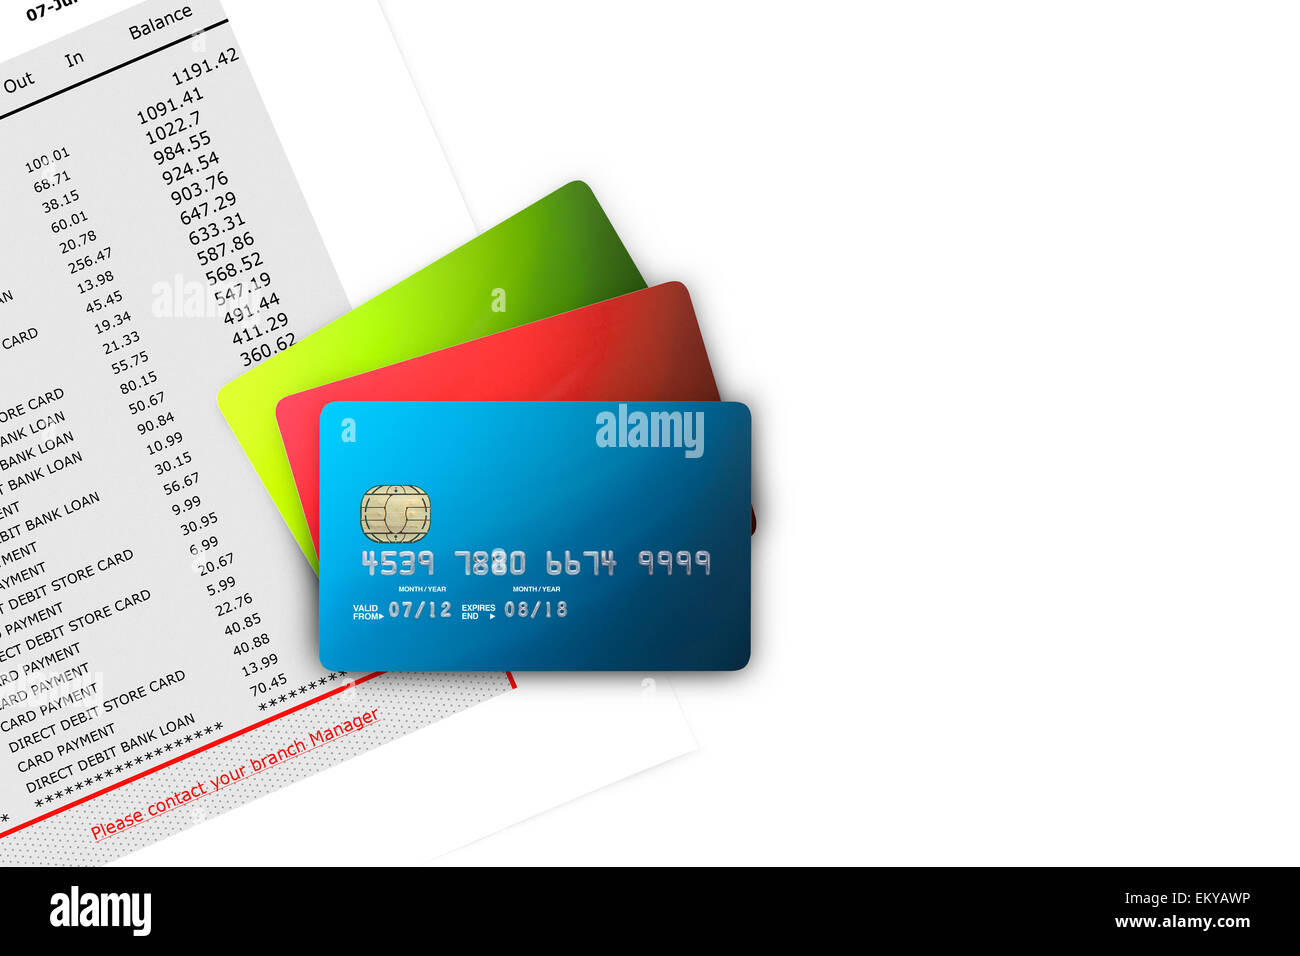 Credit Cards on Bank Statements - Stock Image